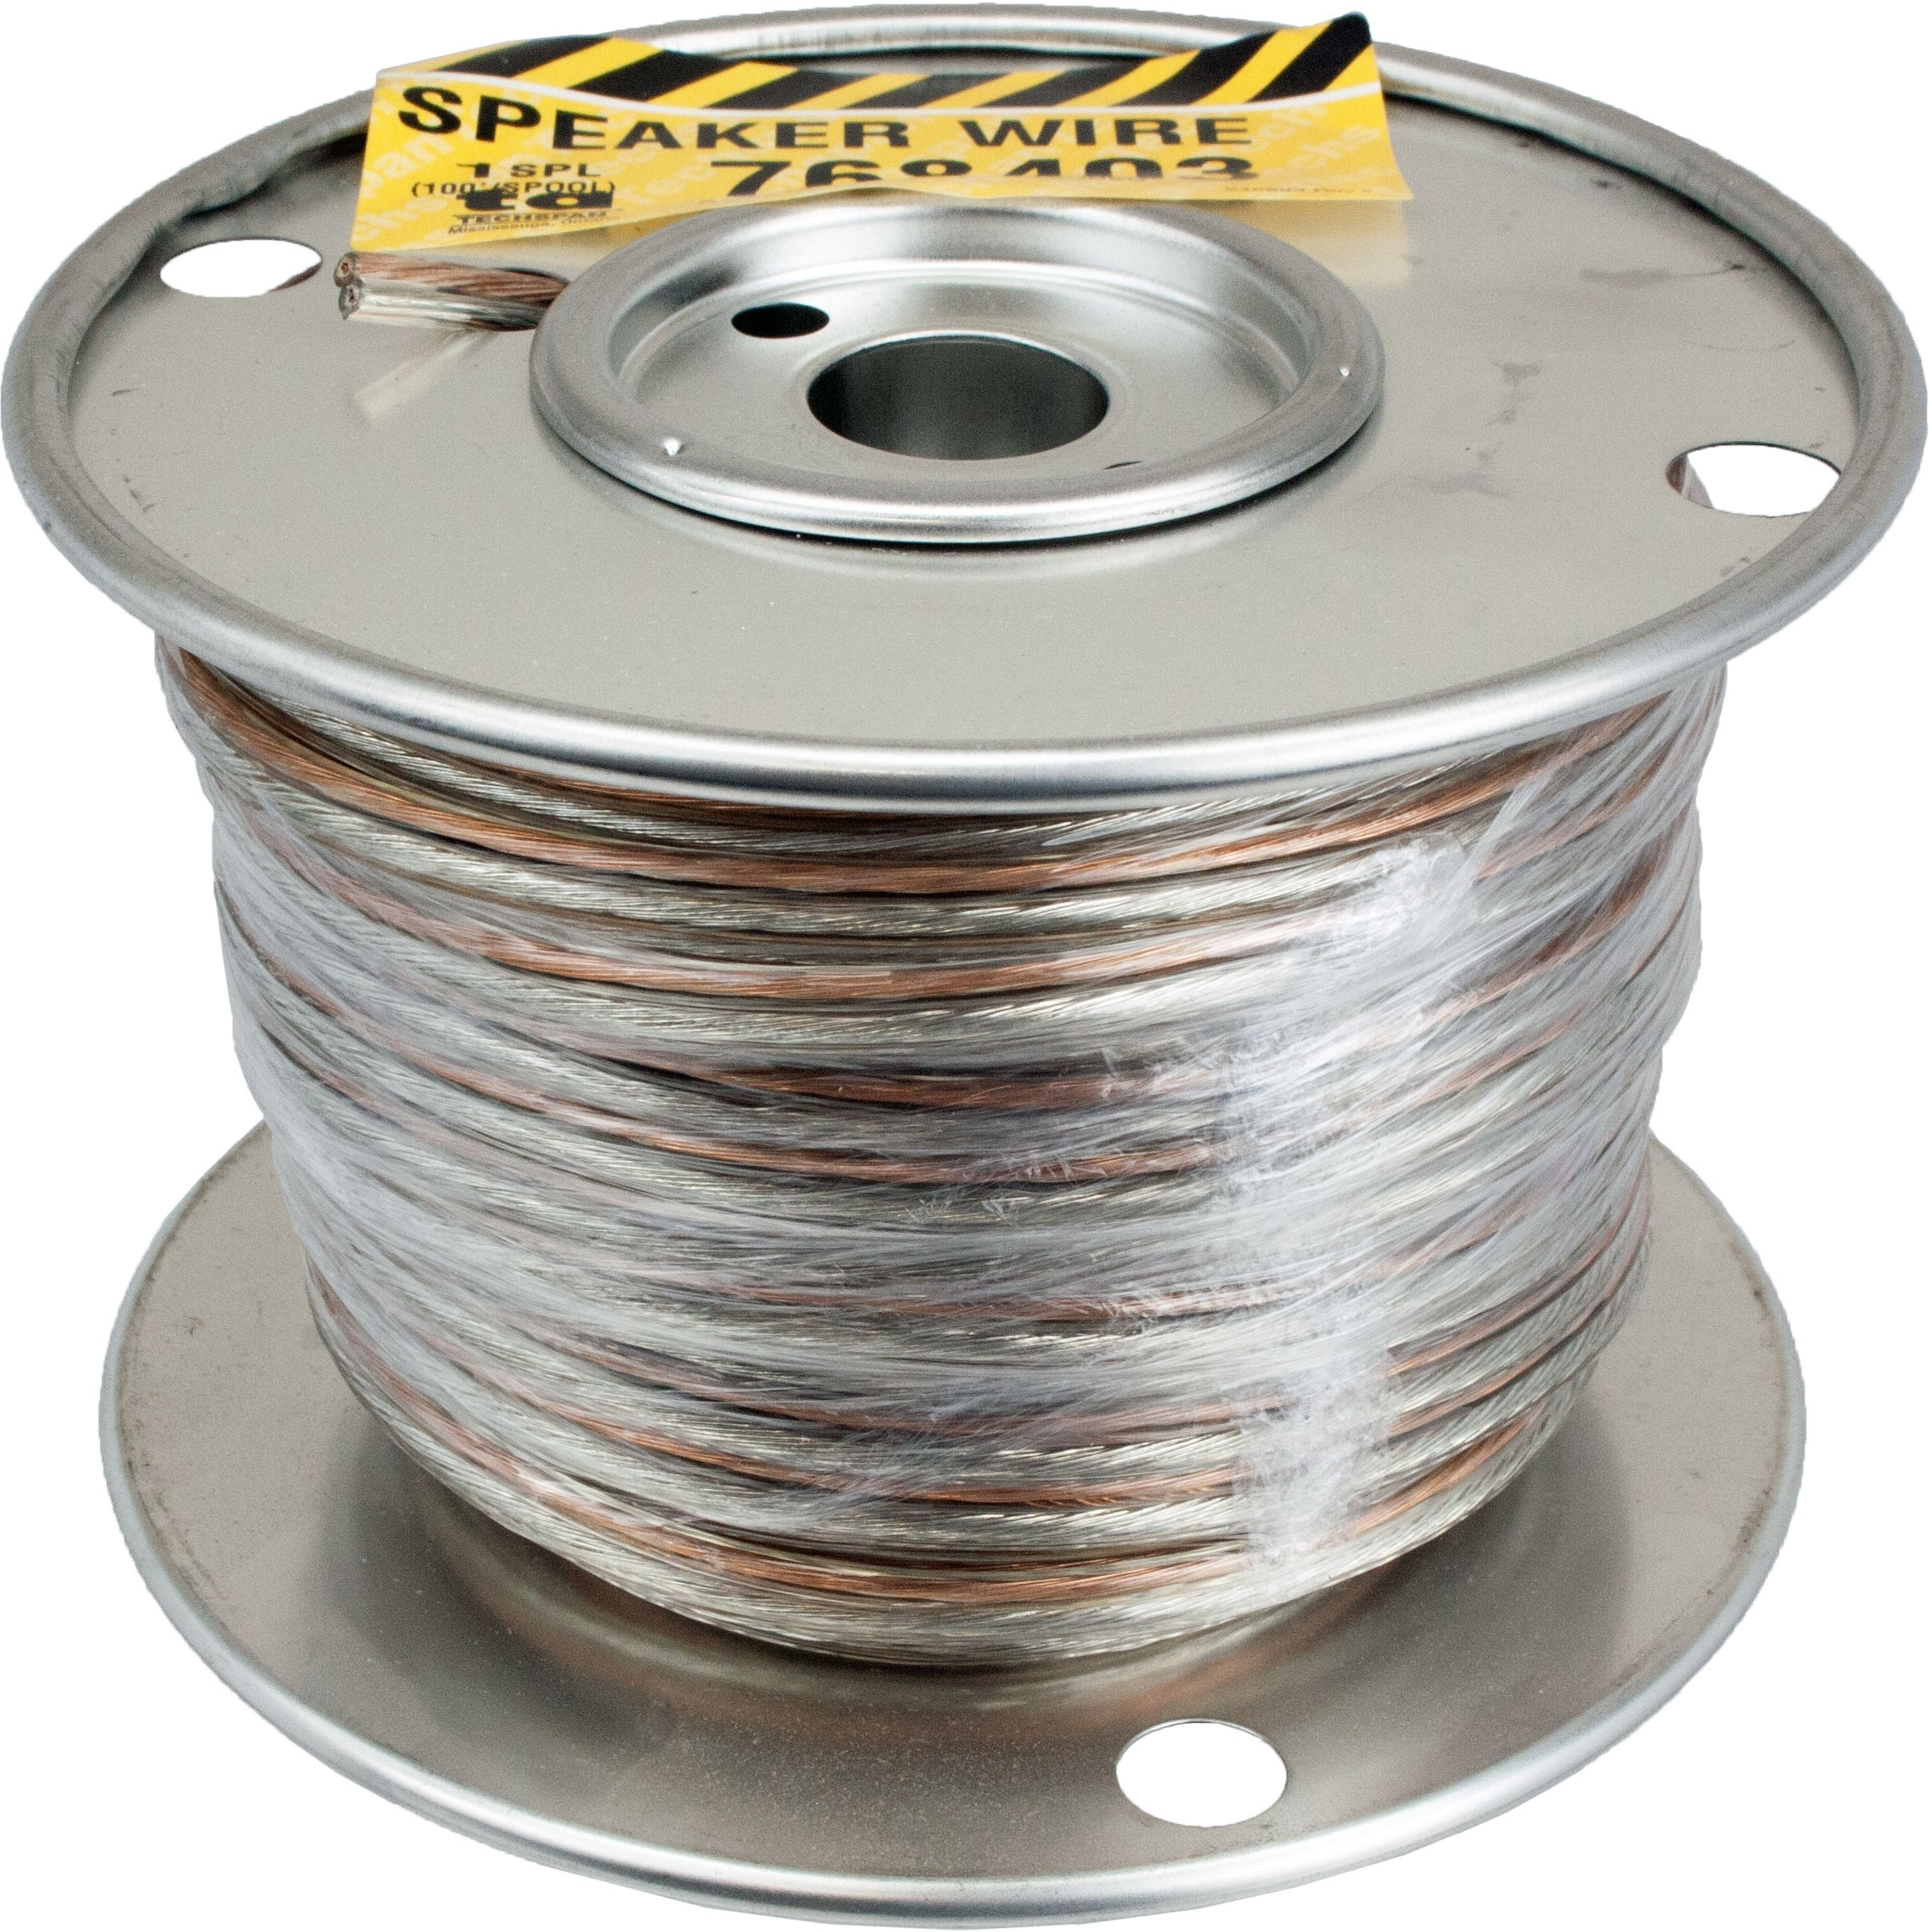 2/22 Speaker Wire | 768403 | ElecDirect